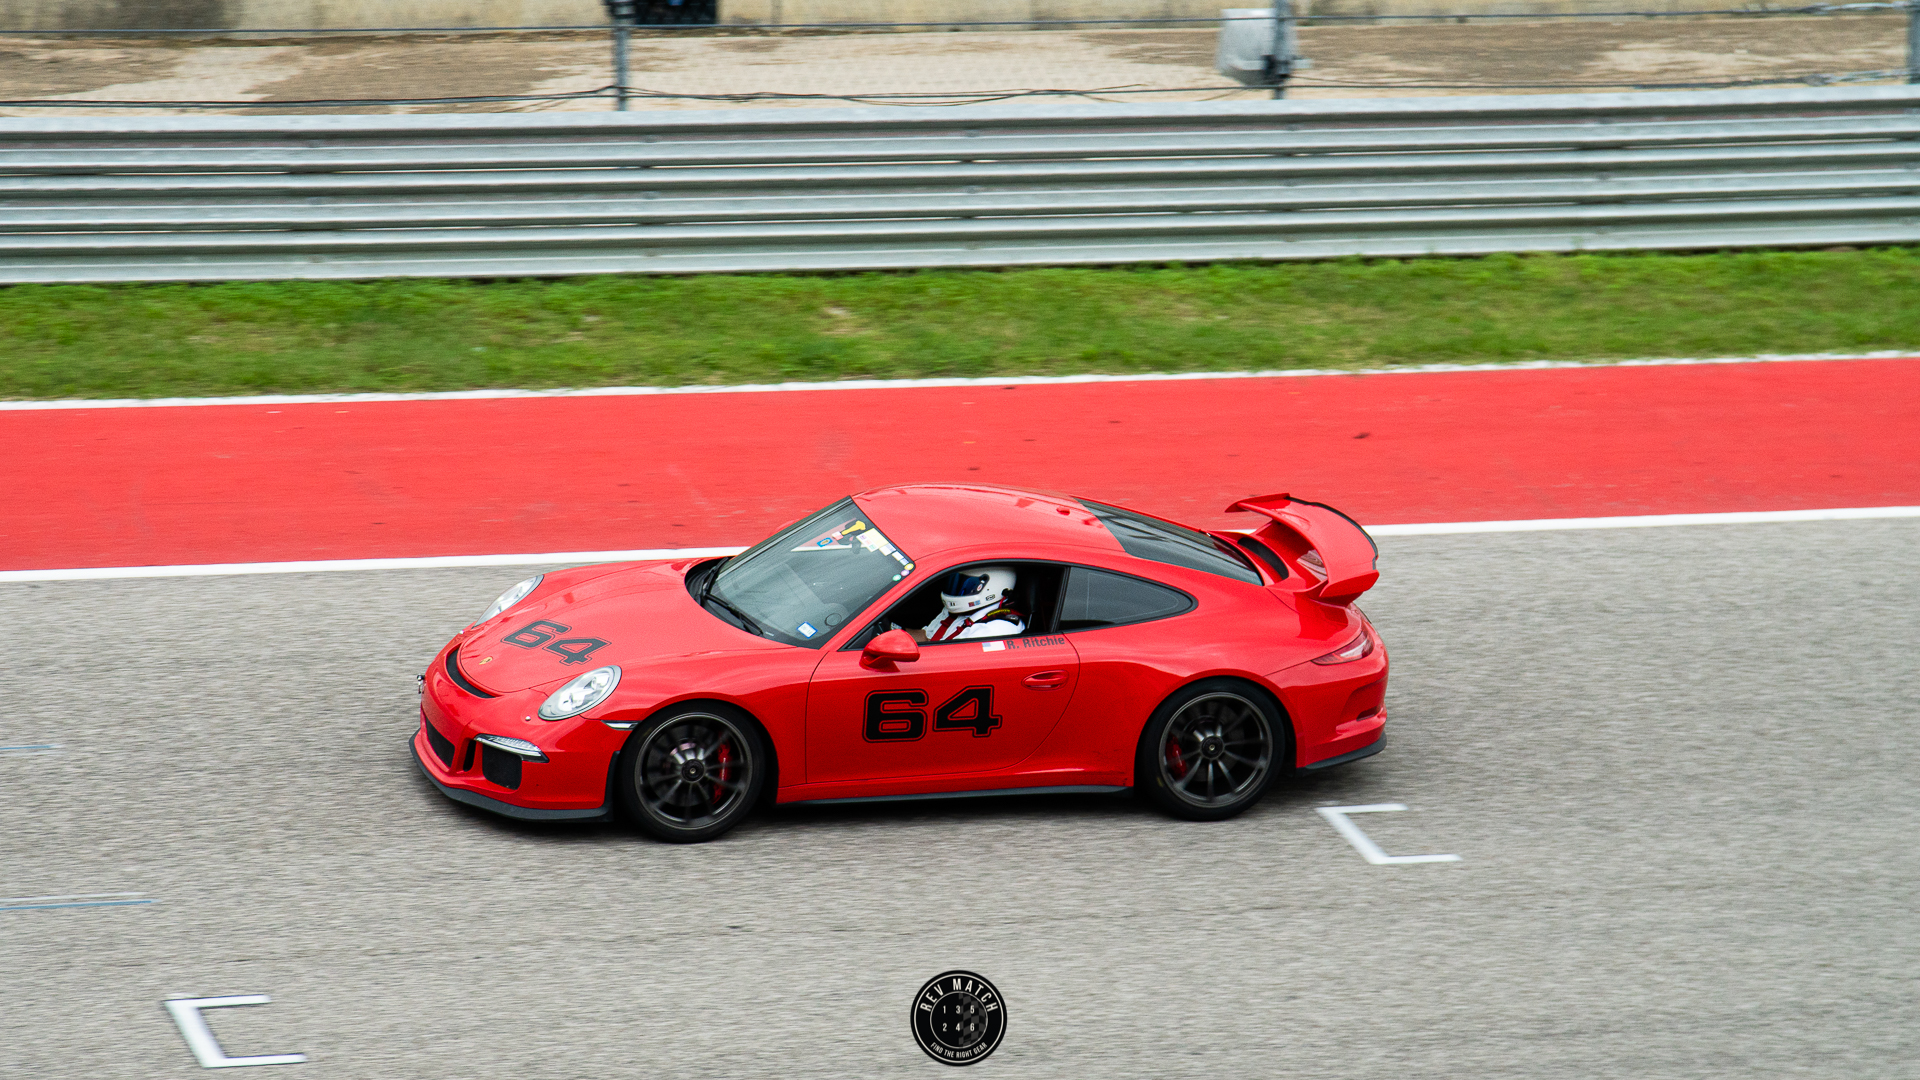 Edge Addict COTA May 2019 Rev Match Media-12.jpg